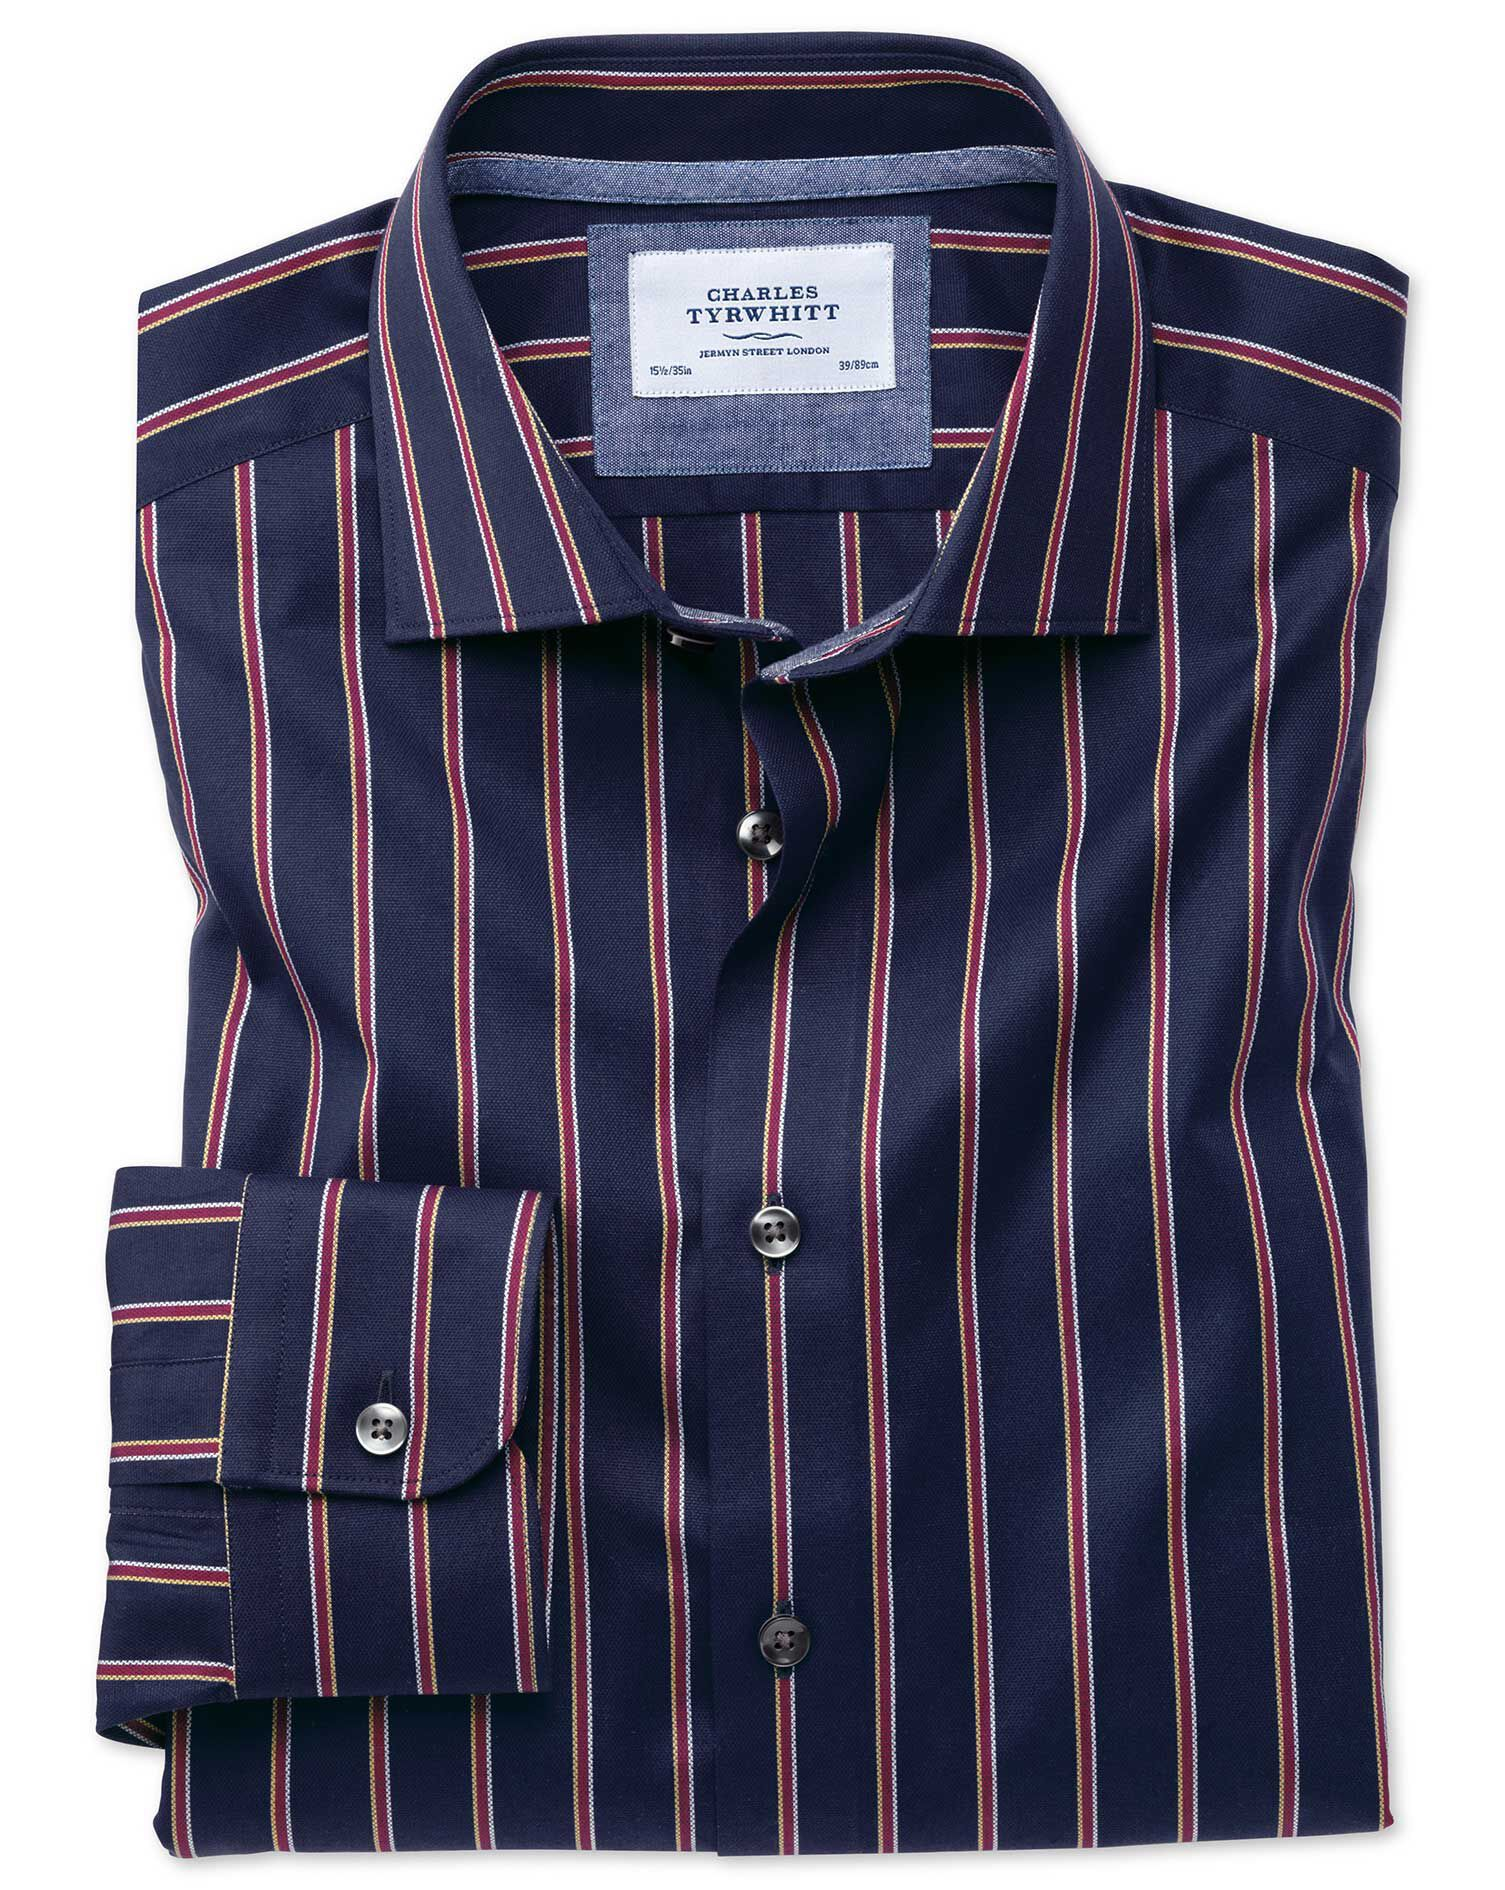 Classic Fit Semi-Cutaway Business Casual Boating Navy and Red Stripe Cotton Formal Shirt Single Cuff